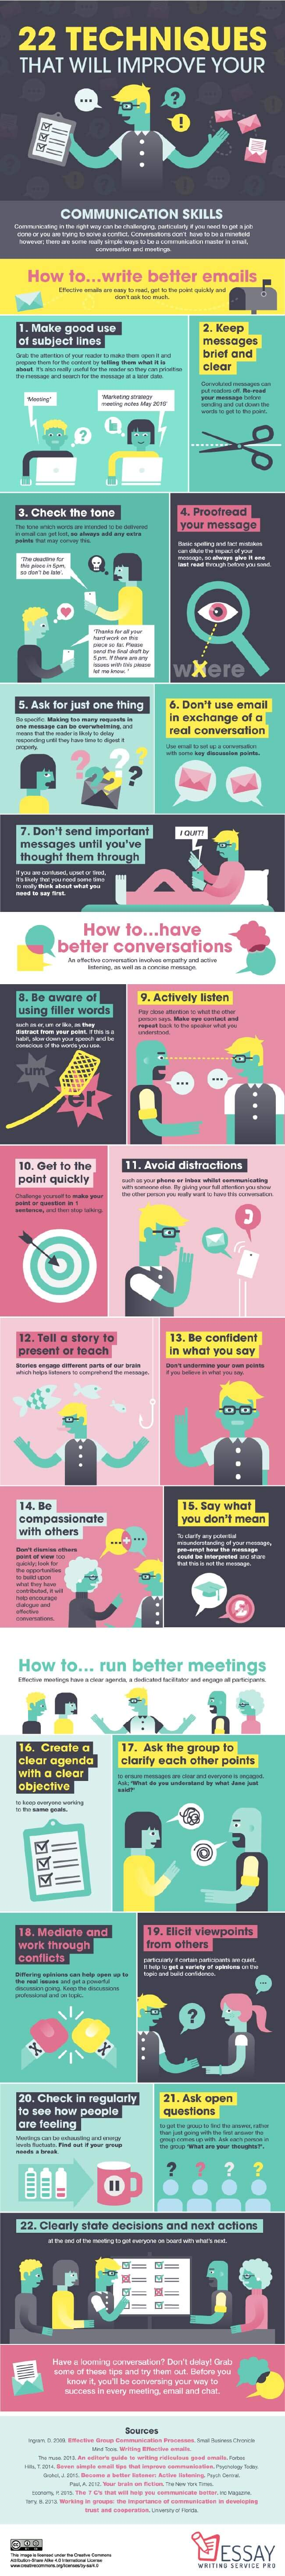 Image titled 22 techniques that will improve your communication skills